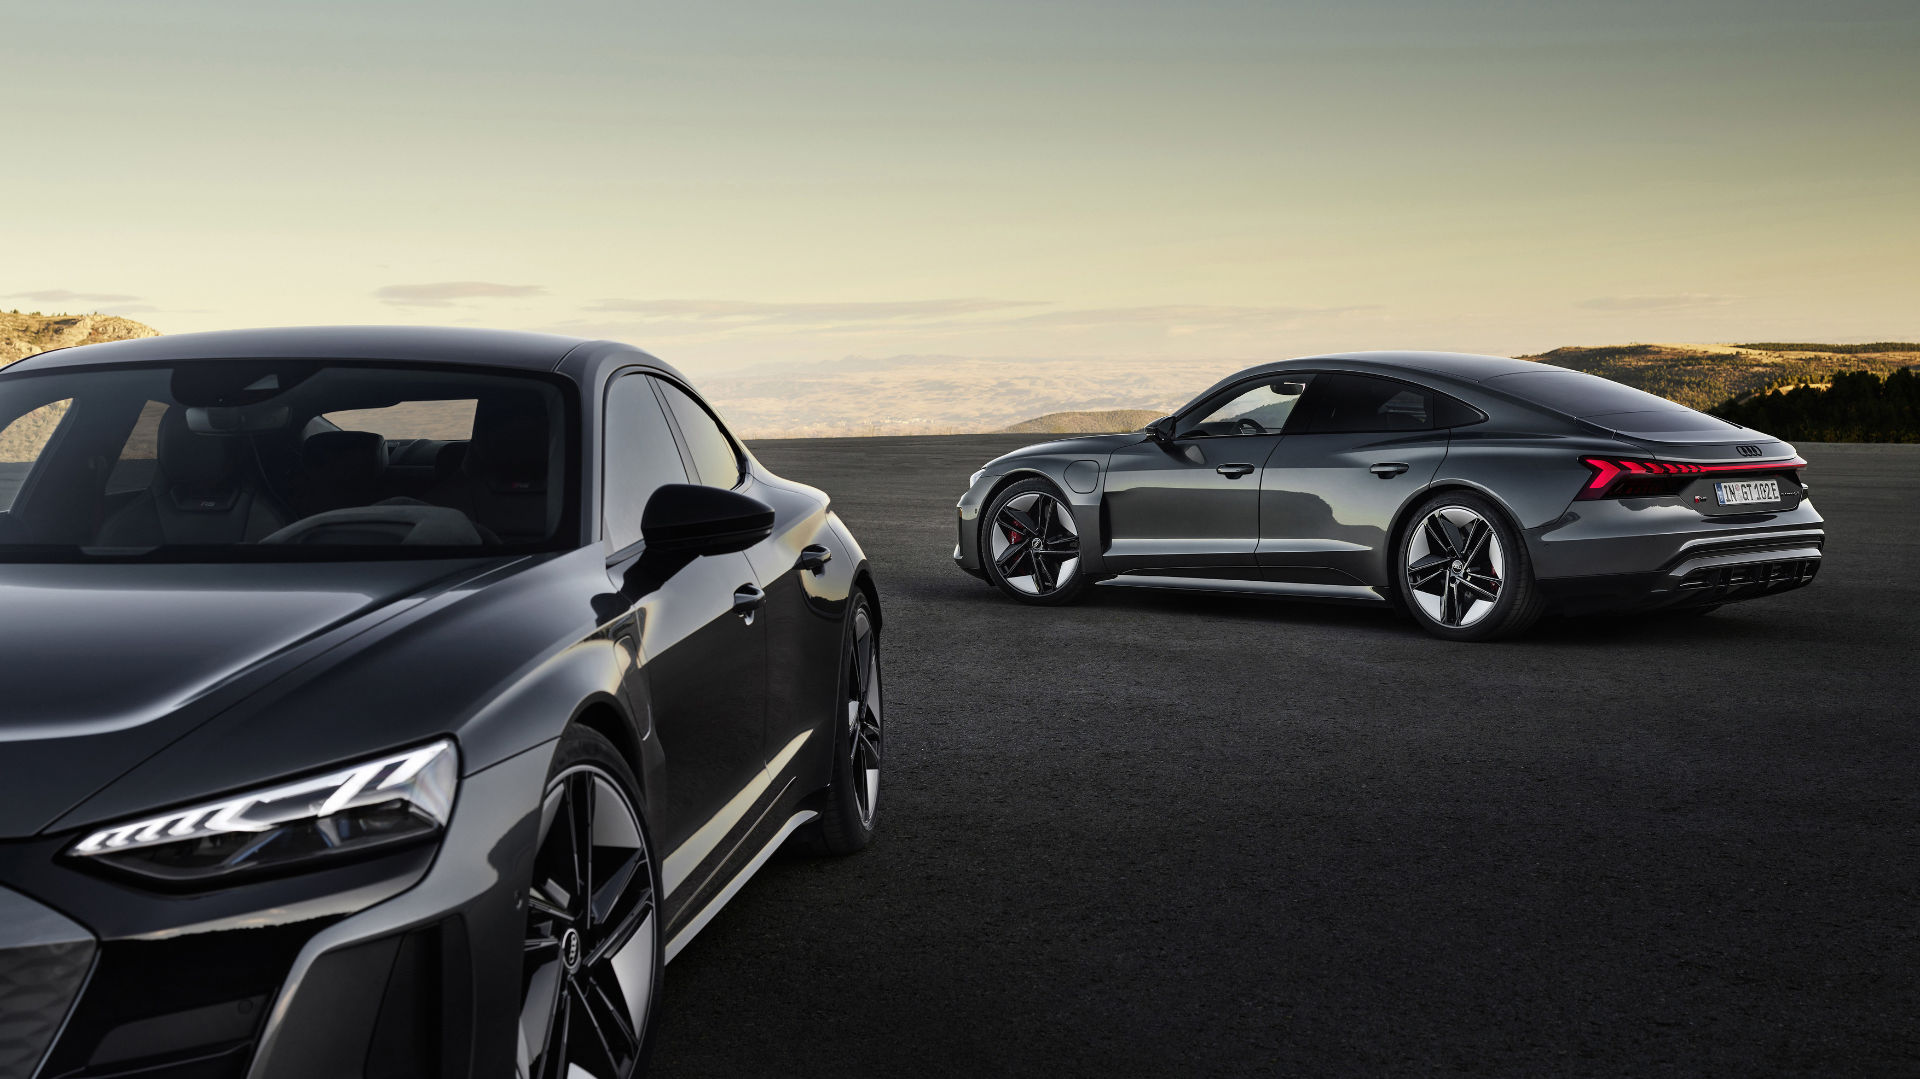 The new Audi e-tron GT quattro and Audi RS e-tron GT. Fully electric and produced at Böllinger Höfe, these vehicles combine forward-looking technologies with Audi's commitment to premium quality, and therefore symbolize the electrical performance of the future.